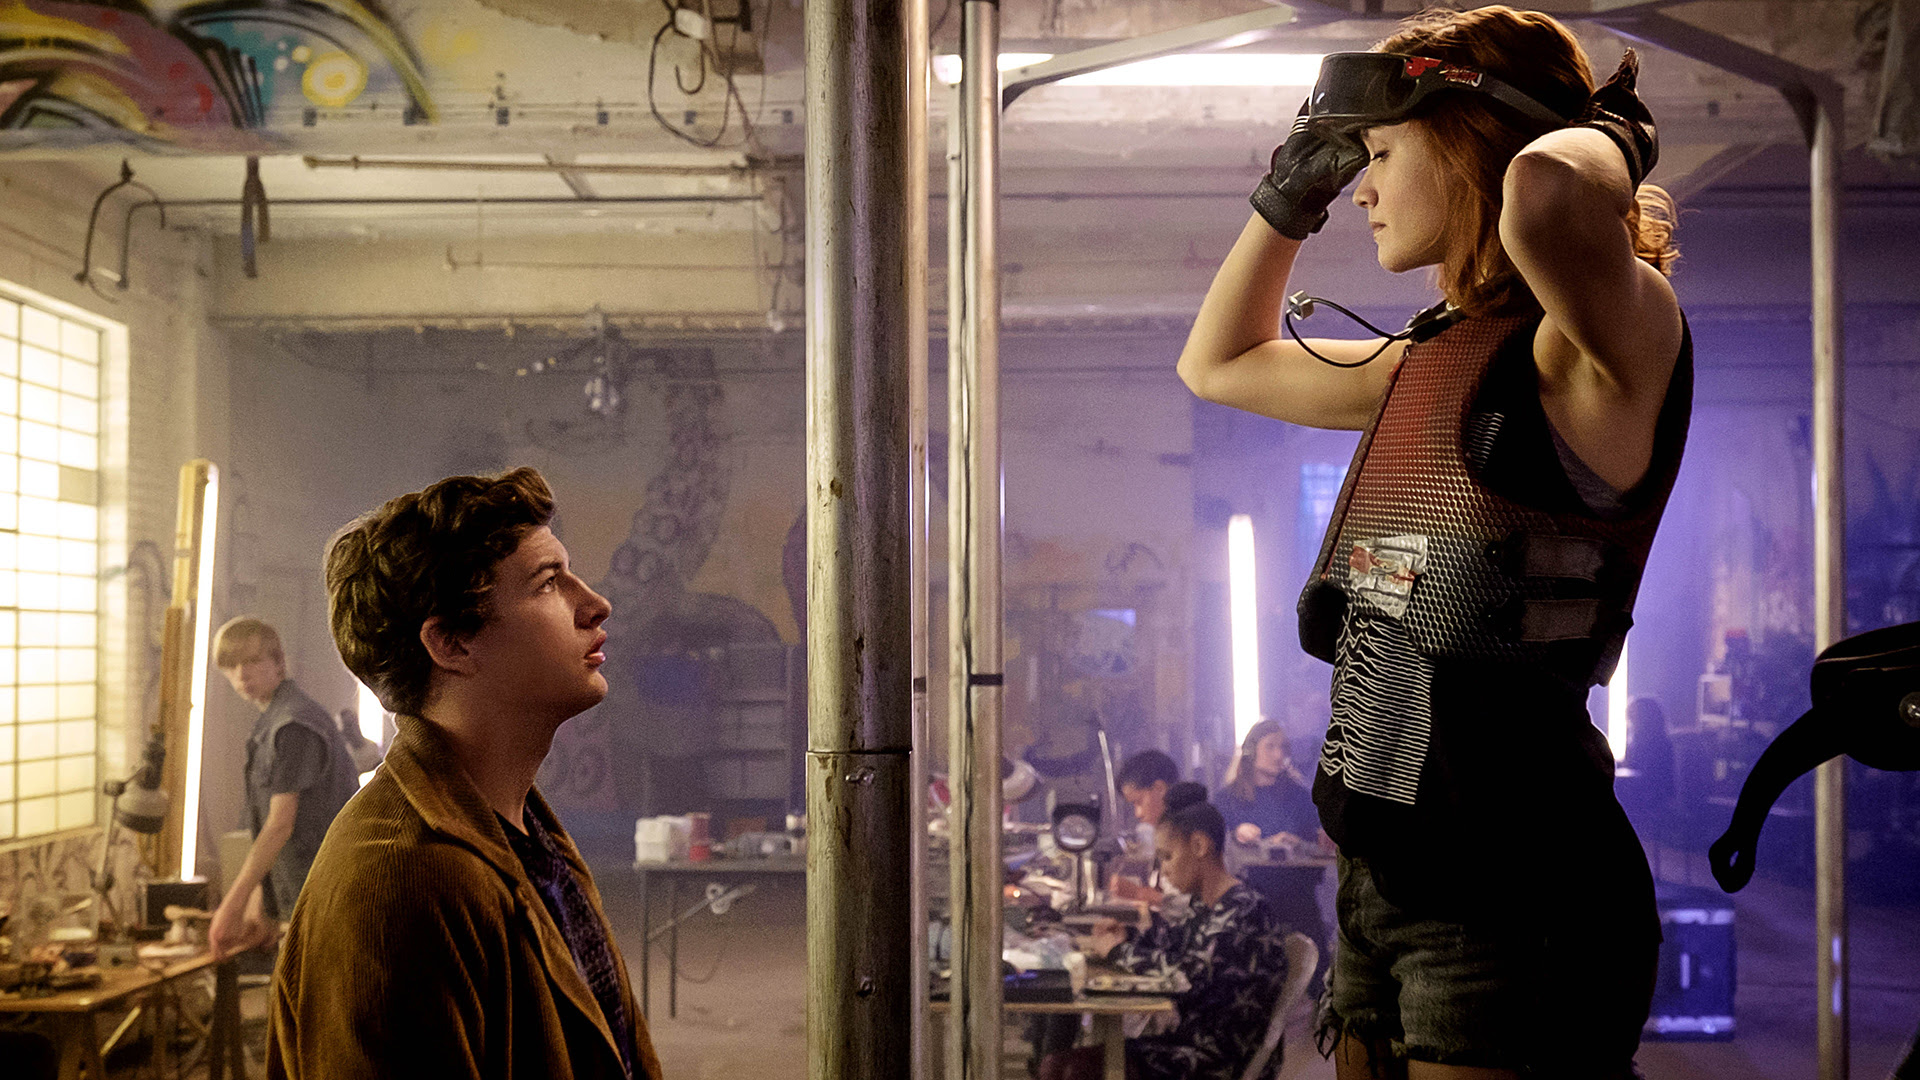 Ready Player One's second trailer is sort of a letdown, hints at cliches and creative license gone wrong screenshot